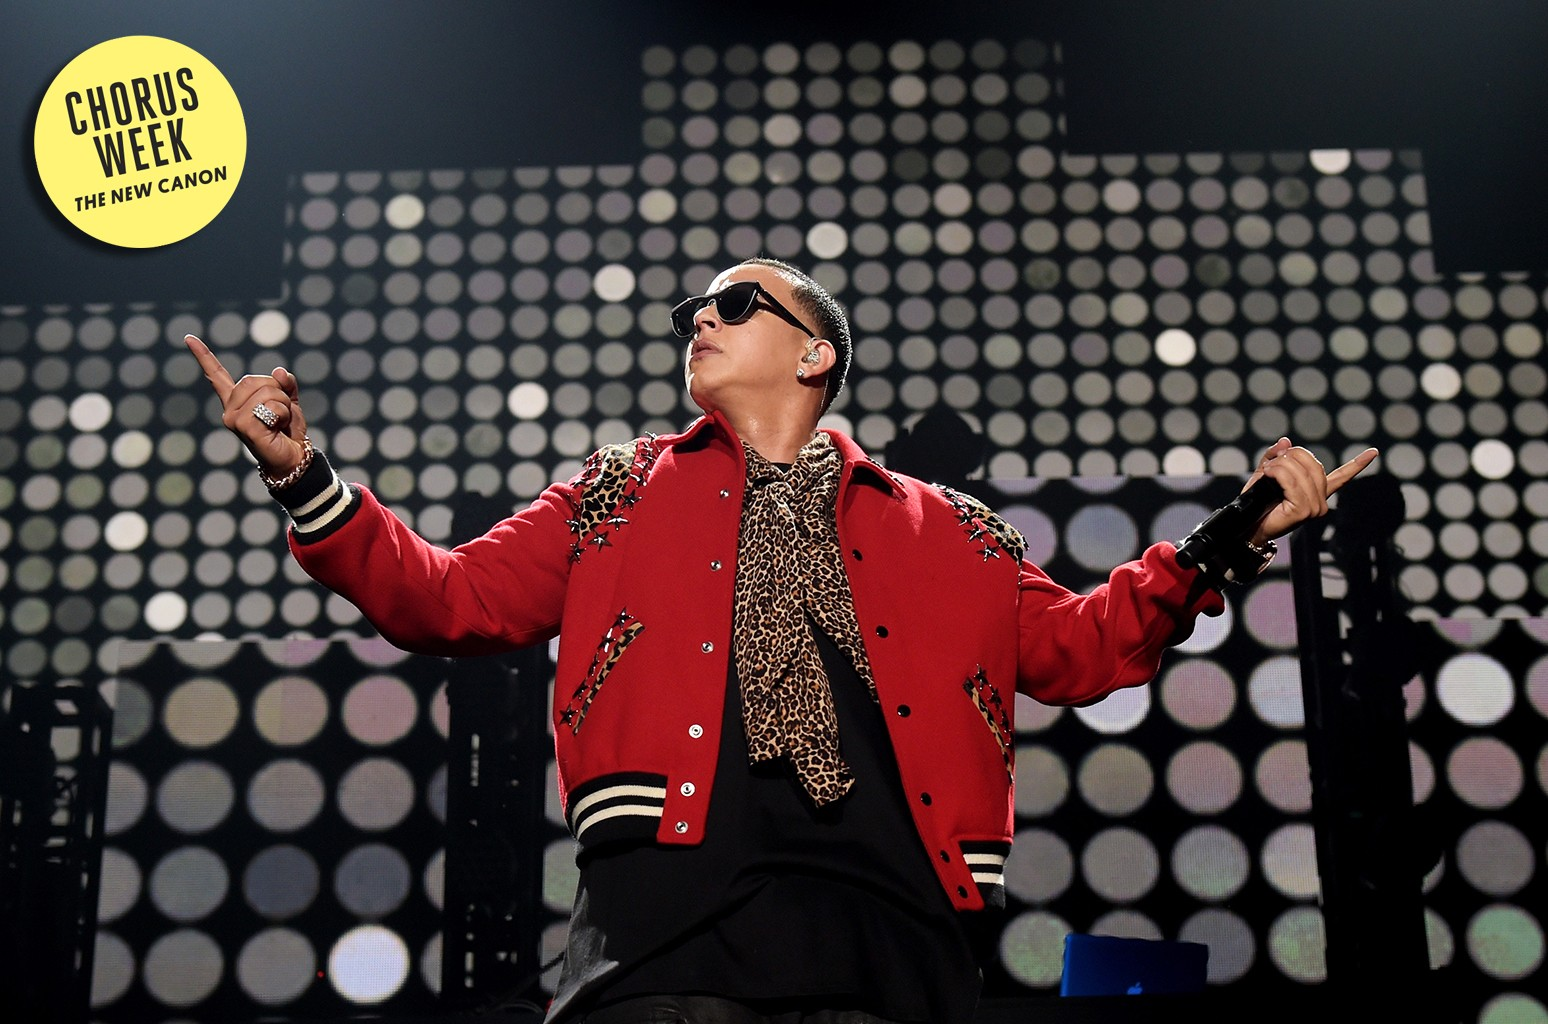 Daddy Yankee performs onstage during the iHeartRadio Fiesta Latina festival presented by Sprint at The Forum on Nov. 22, 2014 in Inglewood, Calif.